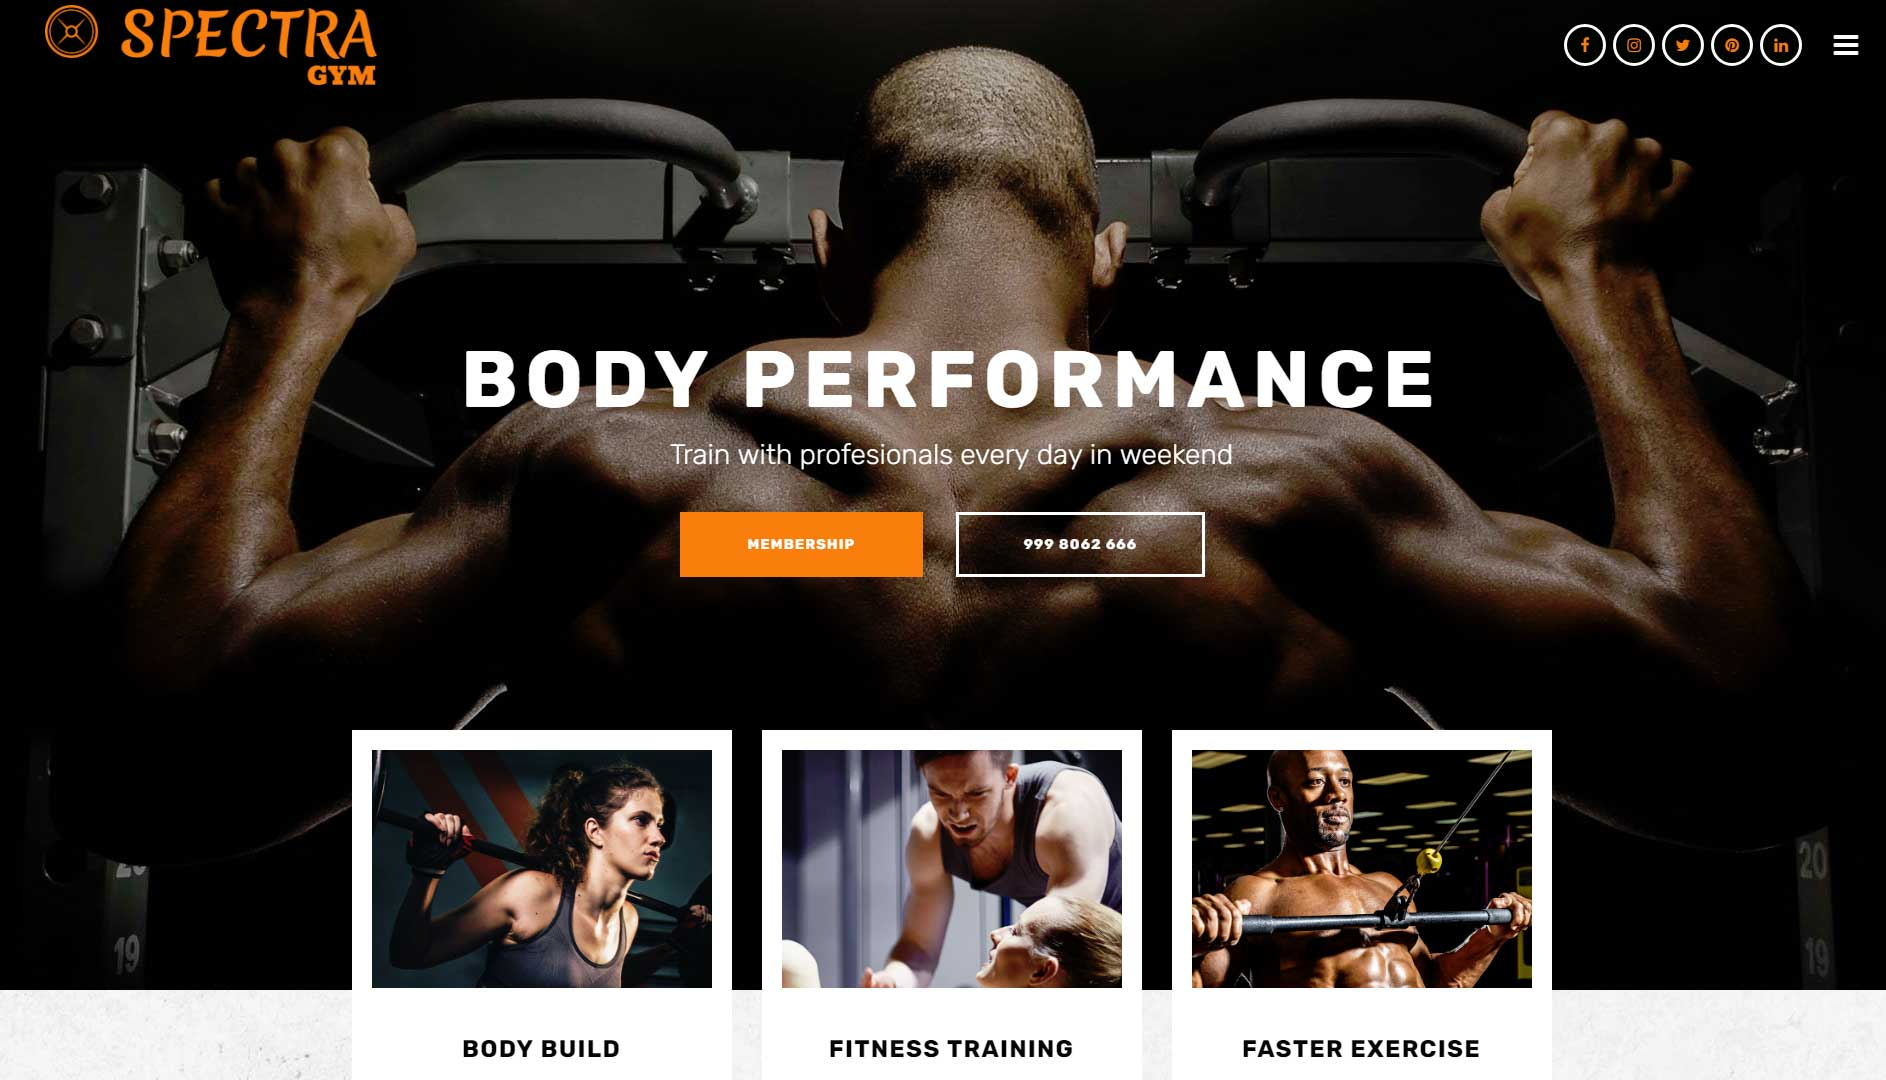 Spectra GYM Website